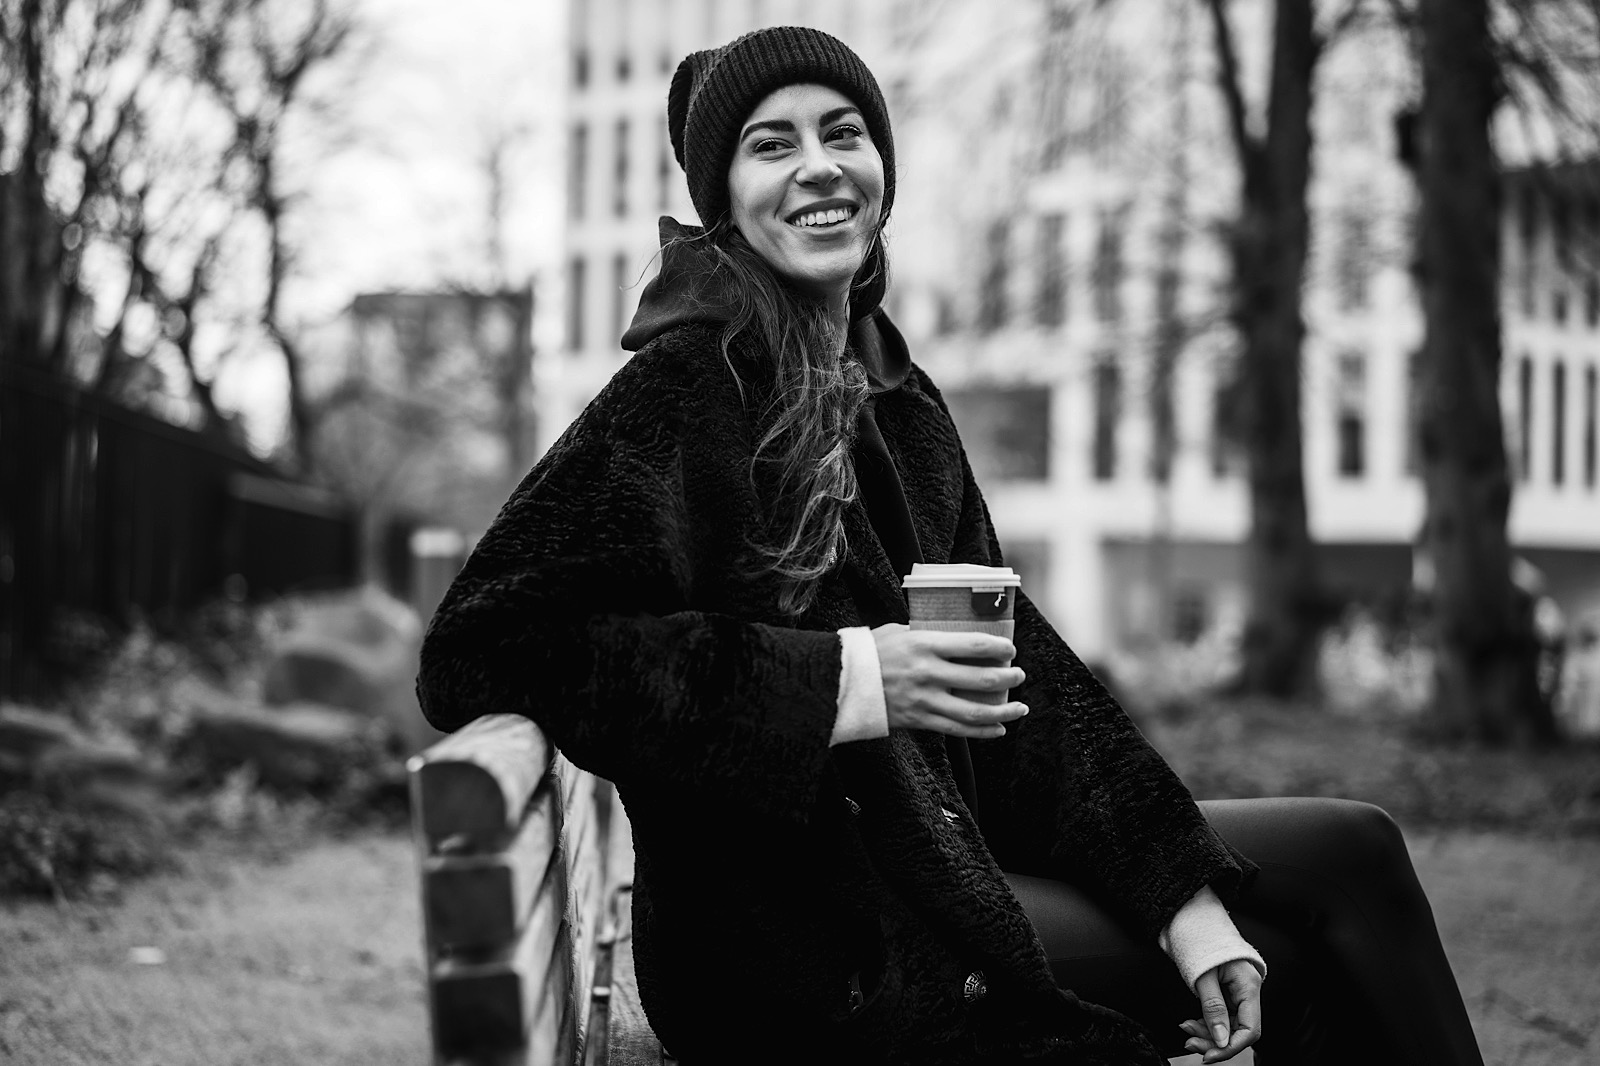 woman sat on bench holding coffee during creative linked in corprate headshot shoot